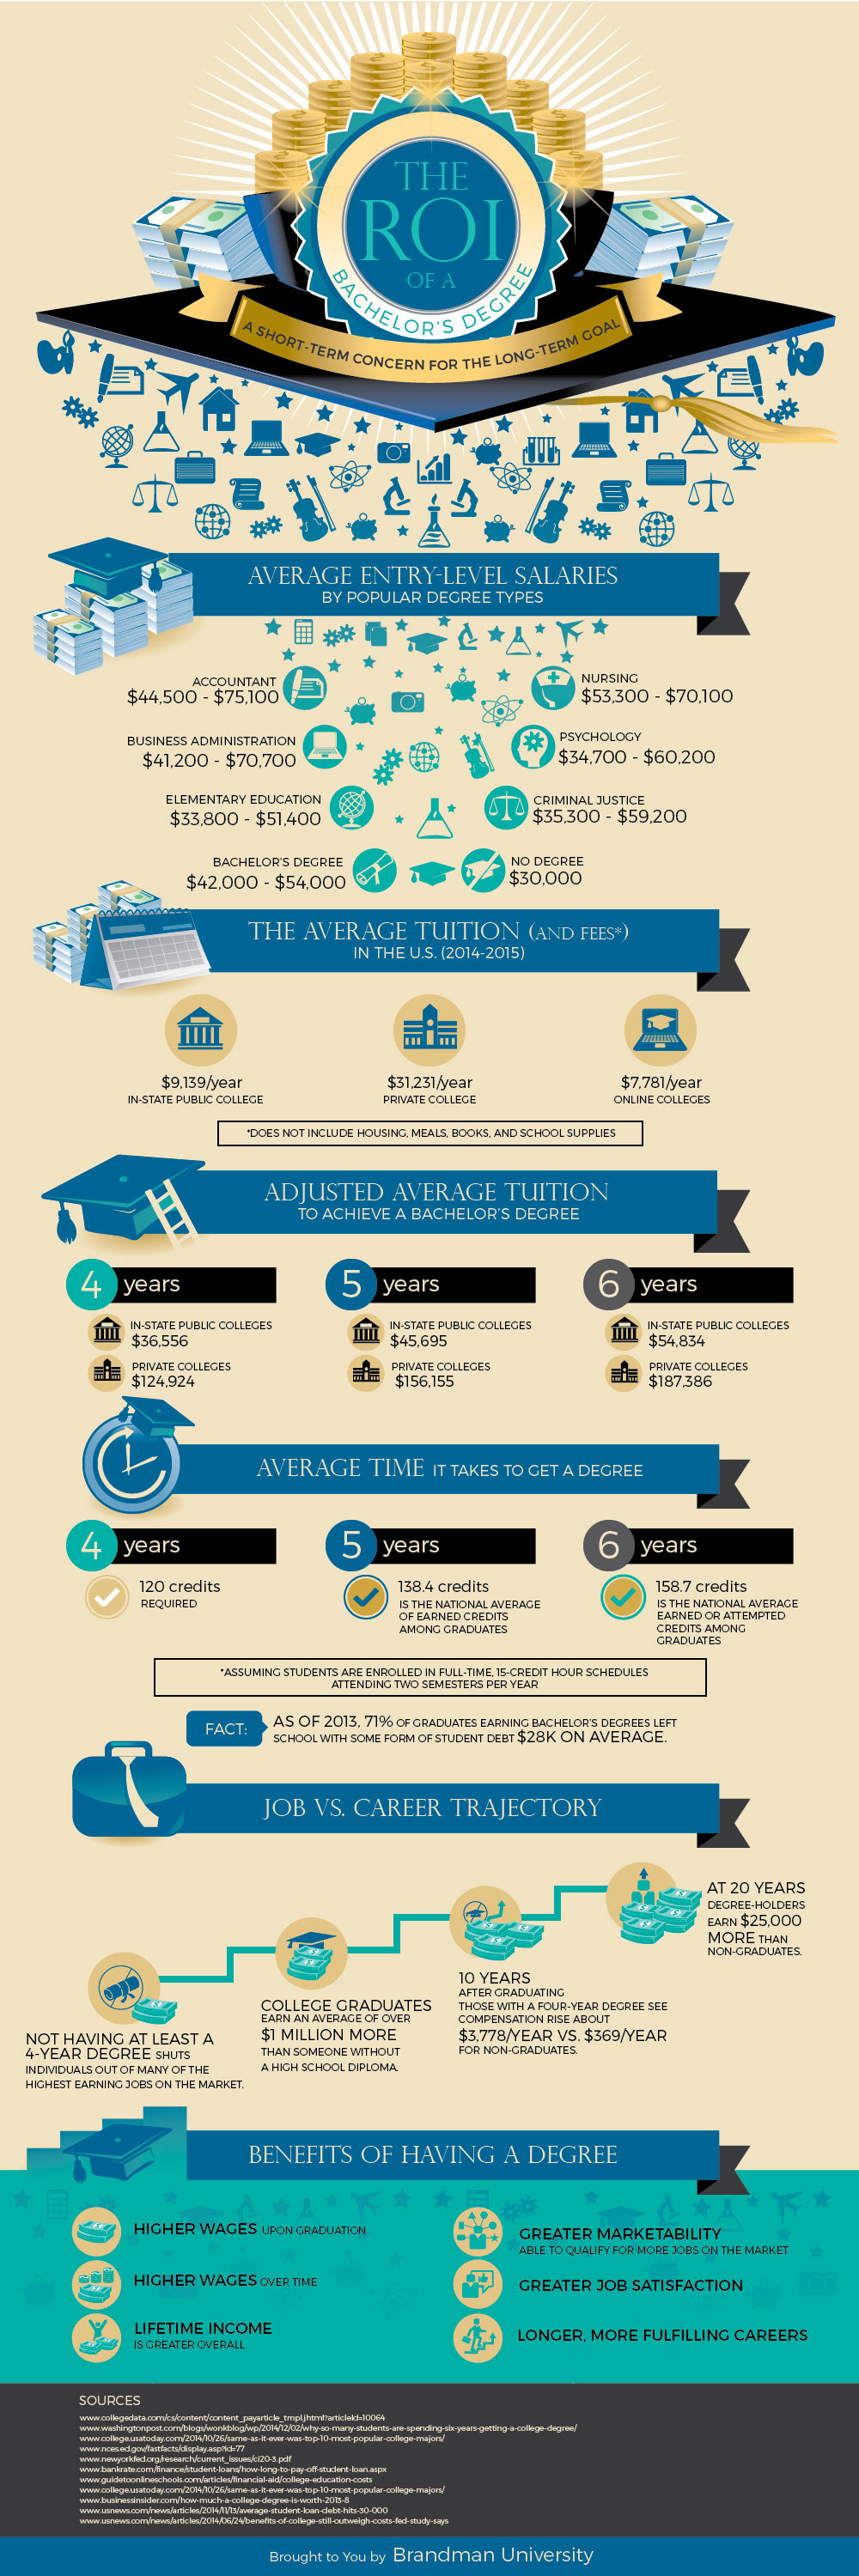 The ROI of a Bachelor's Degree